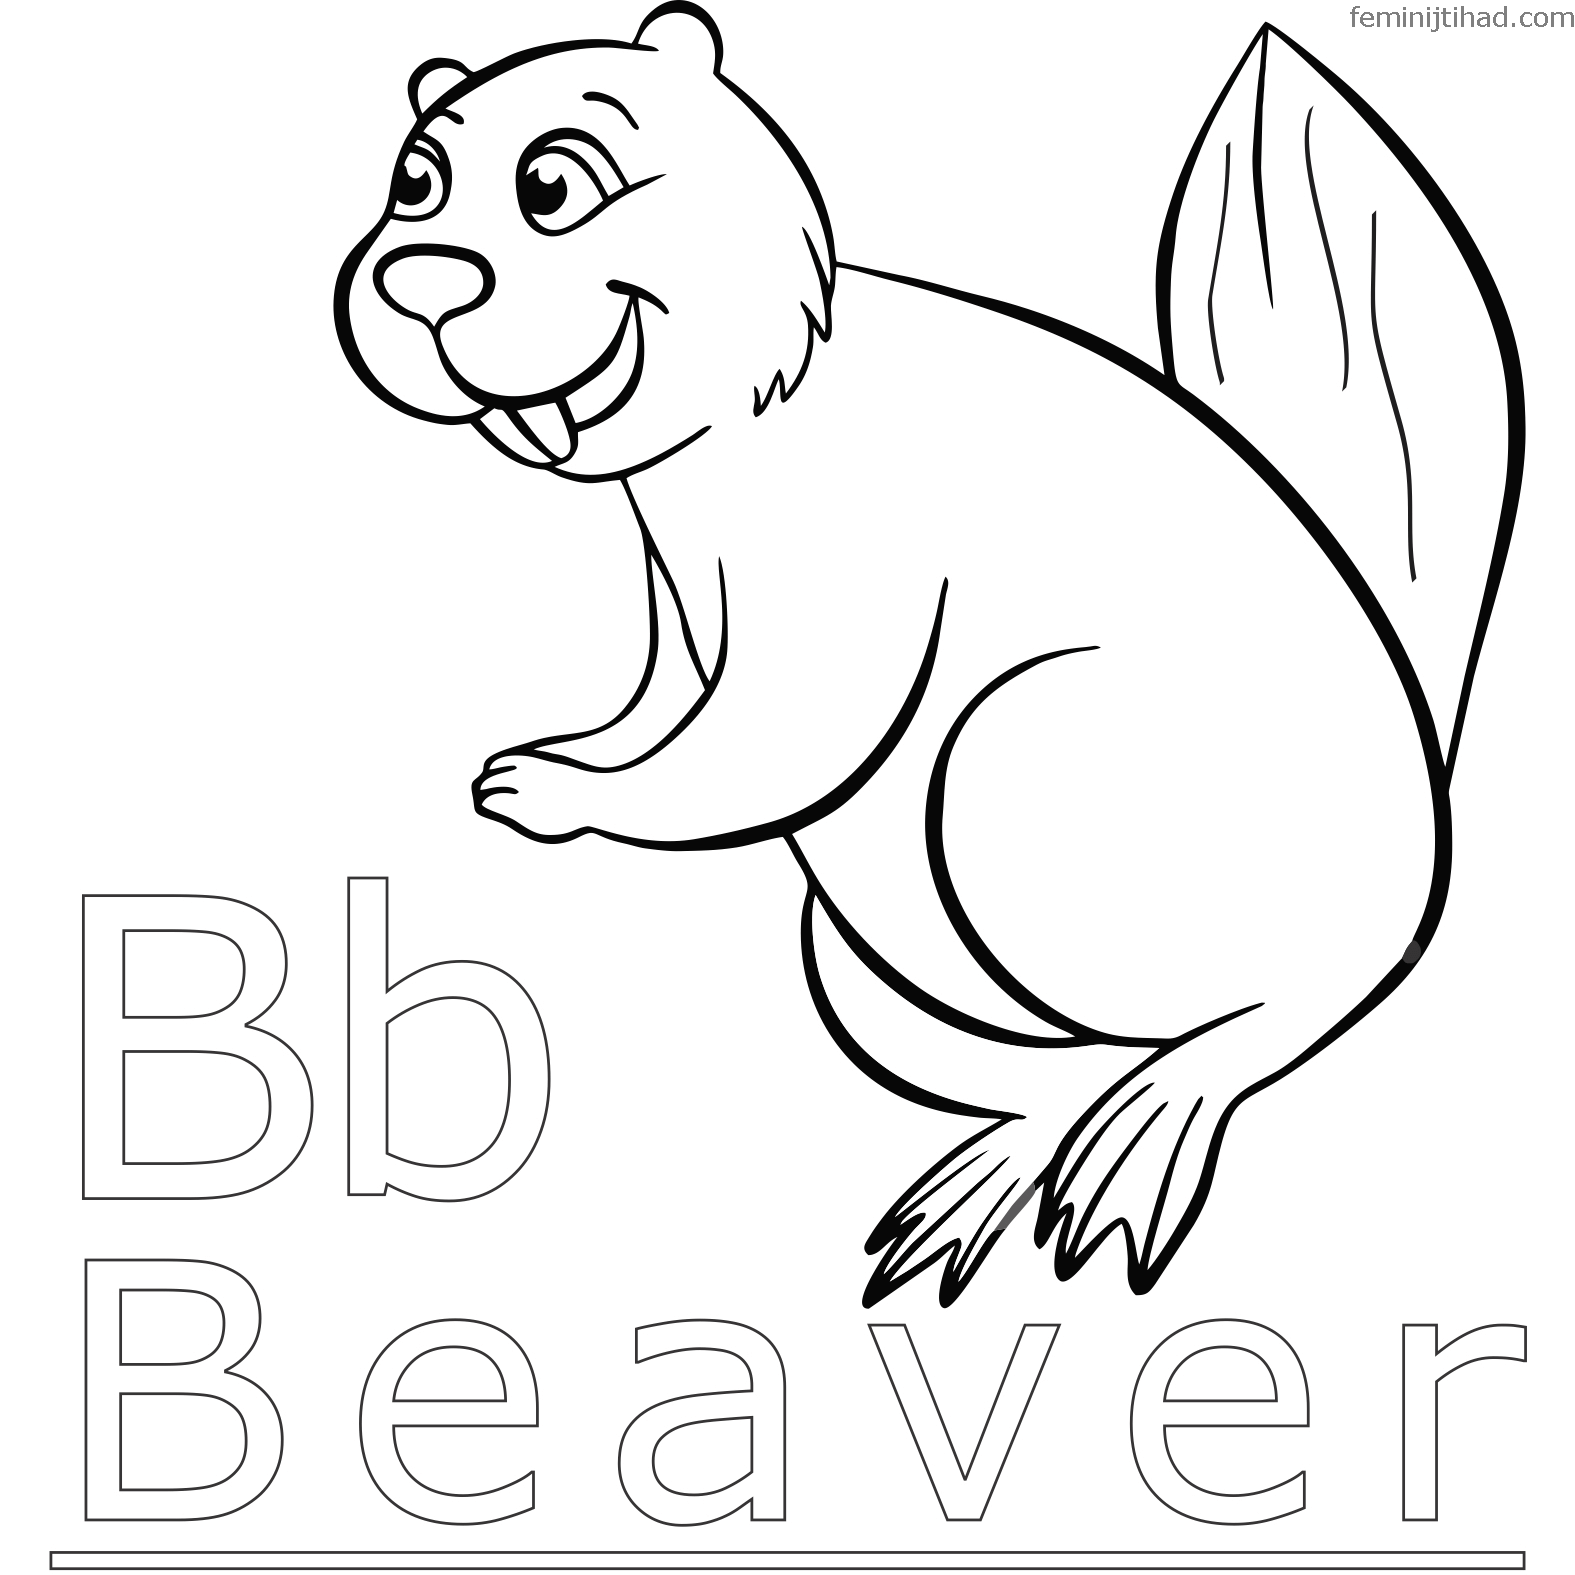 Beaver Coloring Pages To Print For Free Coloring Pages Coloring Pages To Print Animal Coloring Pages